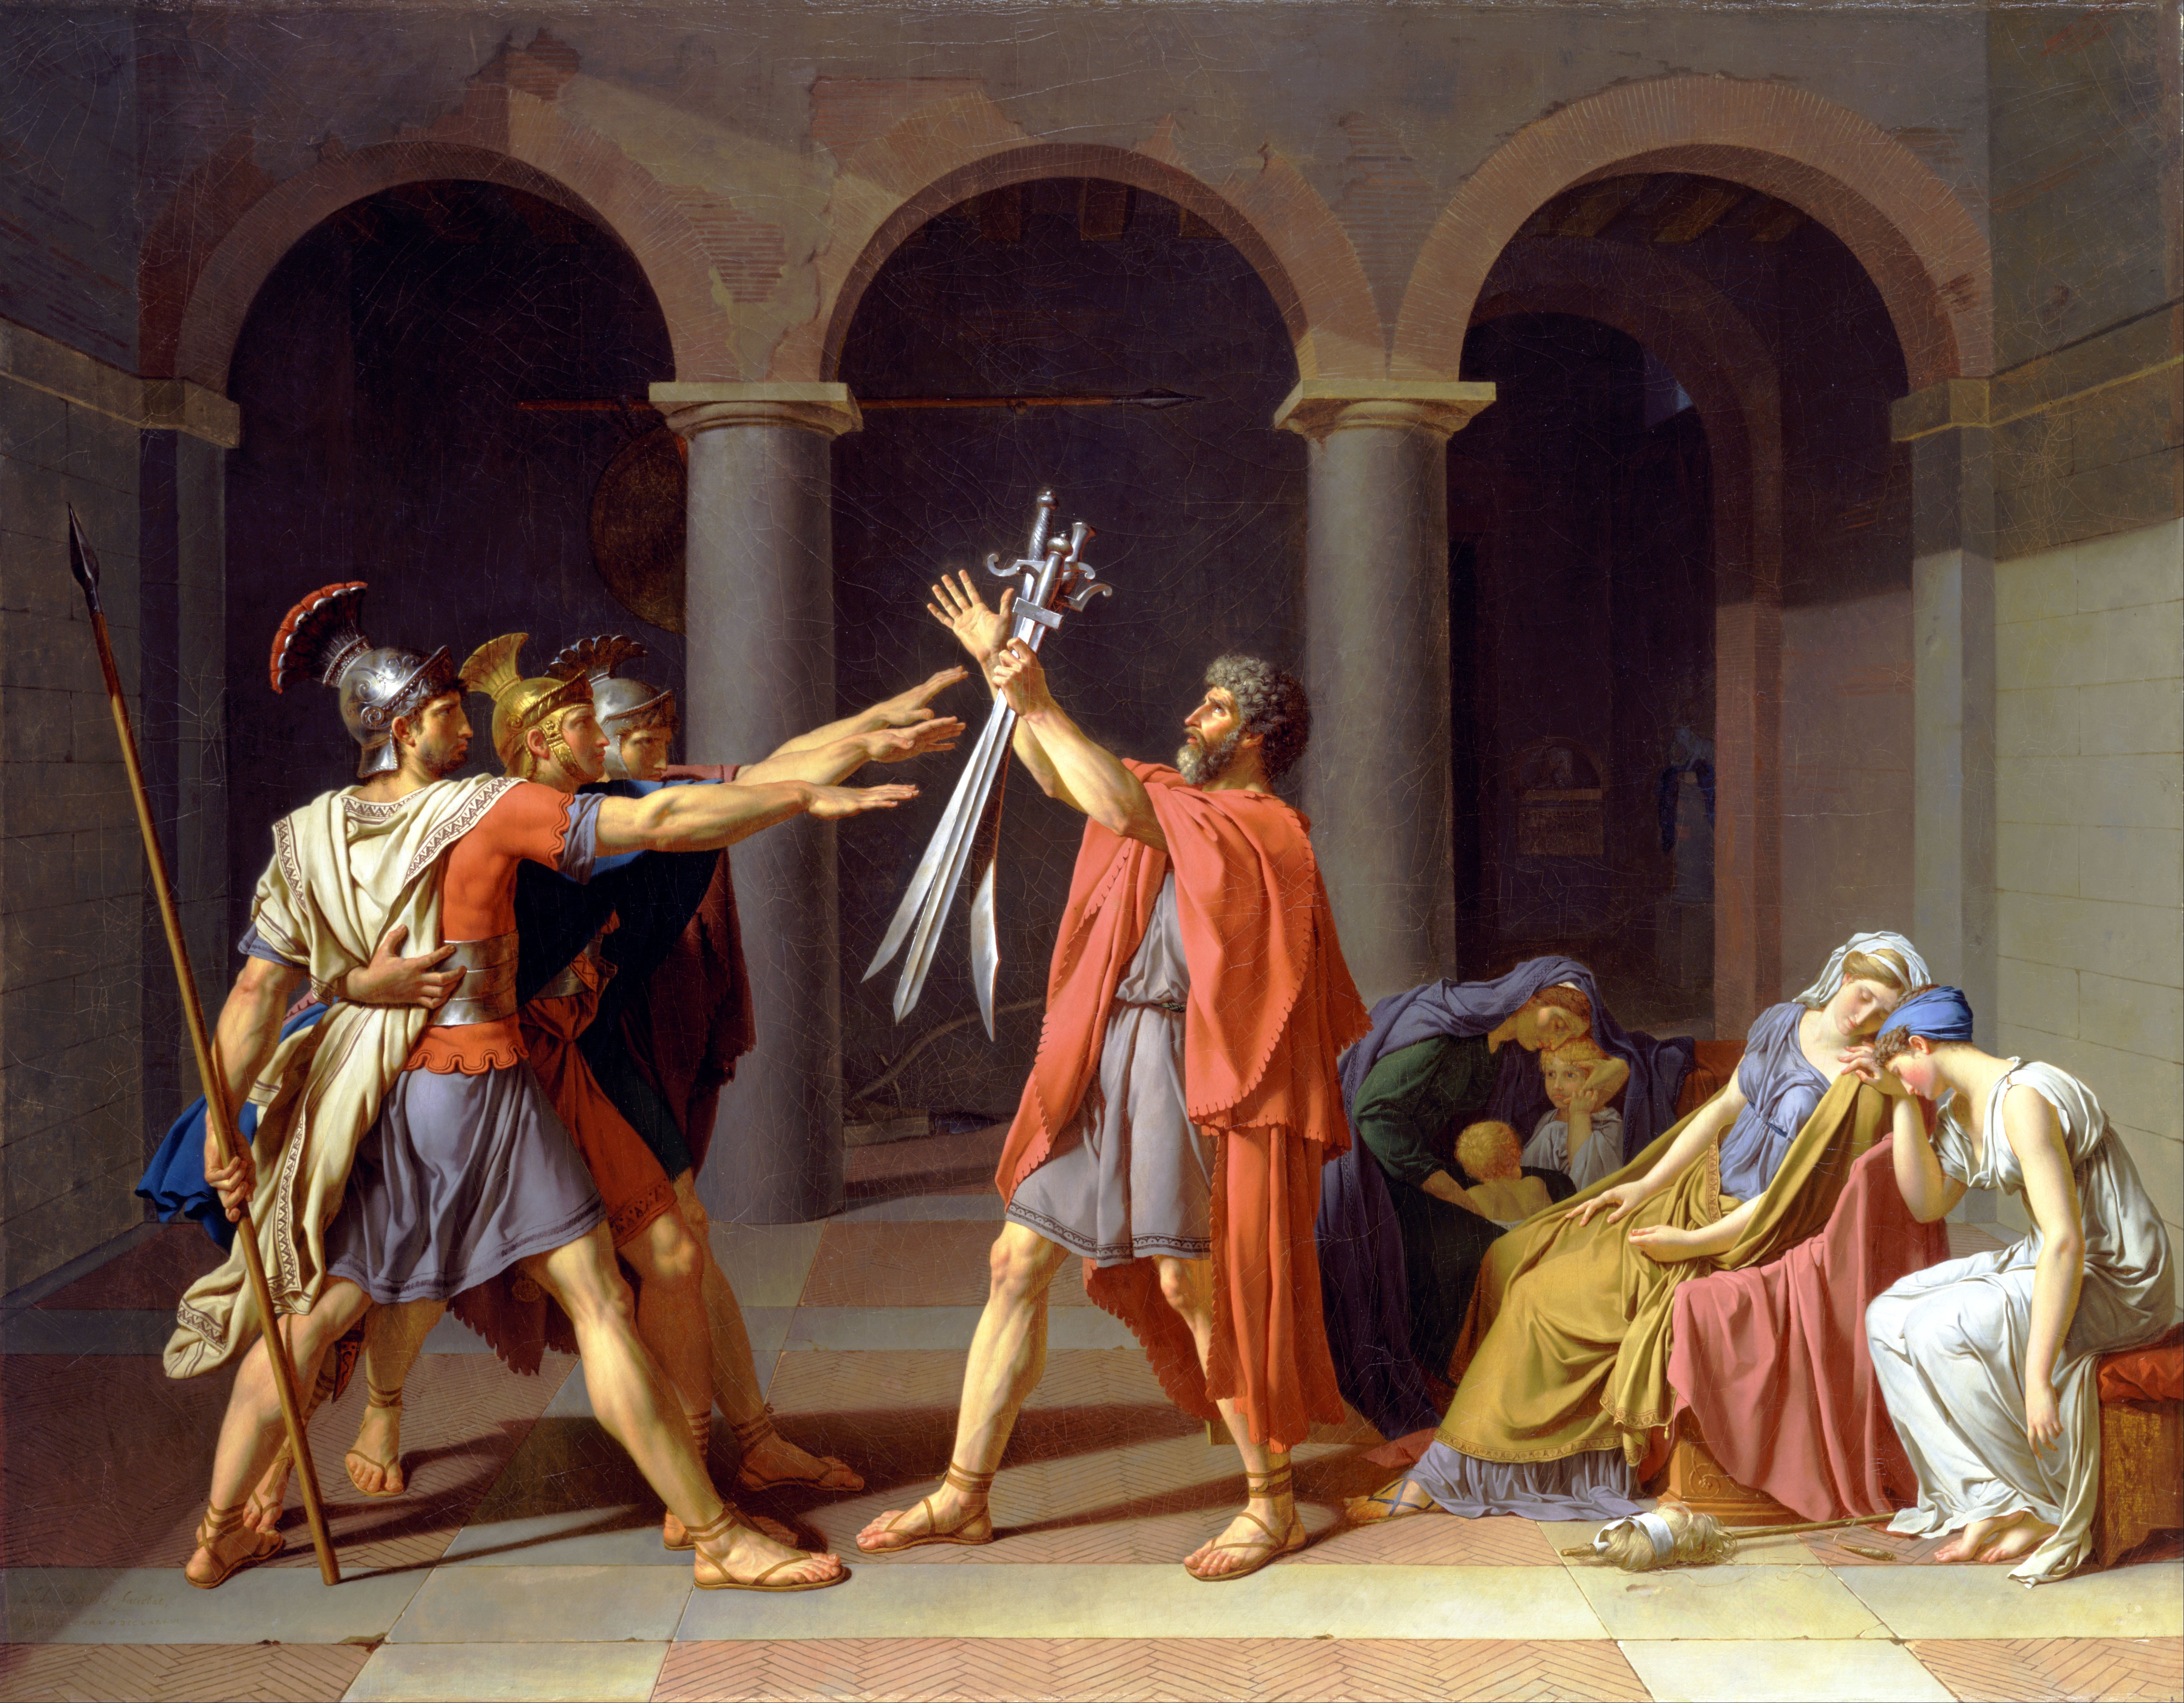 File:Jacques-Louis David - Oath of the Horatii - Google Art Project ...: en.wikipedia.org/wiki/file:jacques-louis_david_-_oath_of_the...